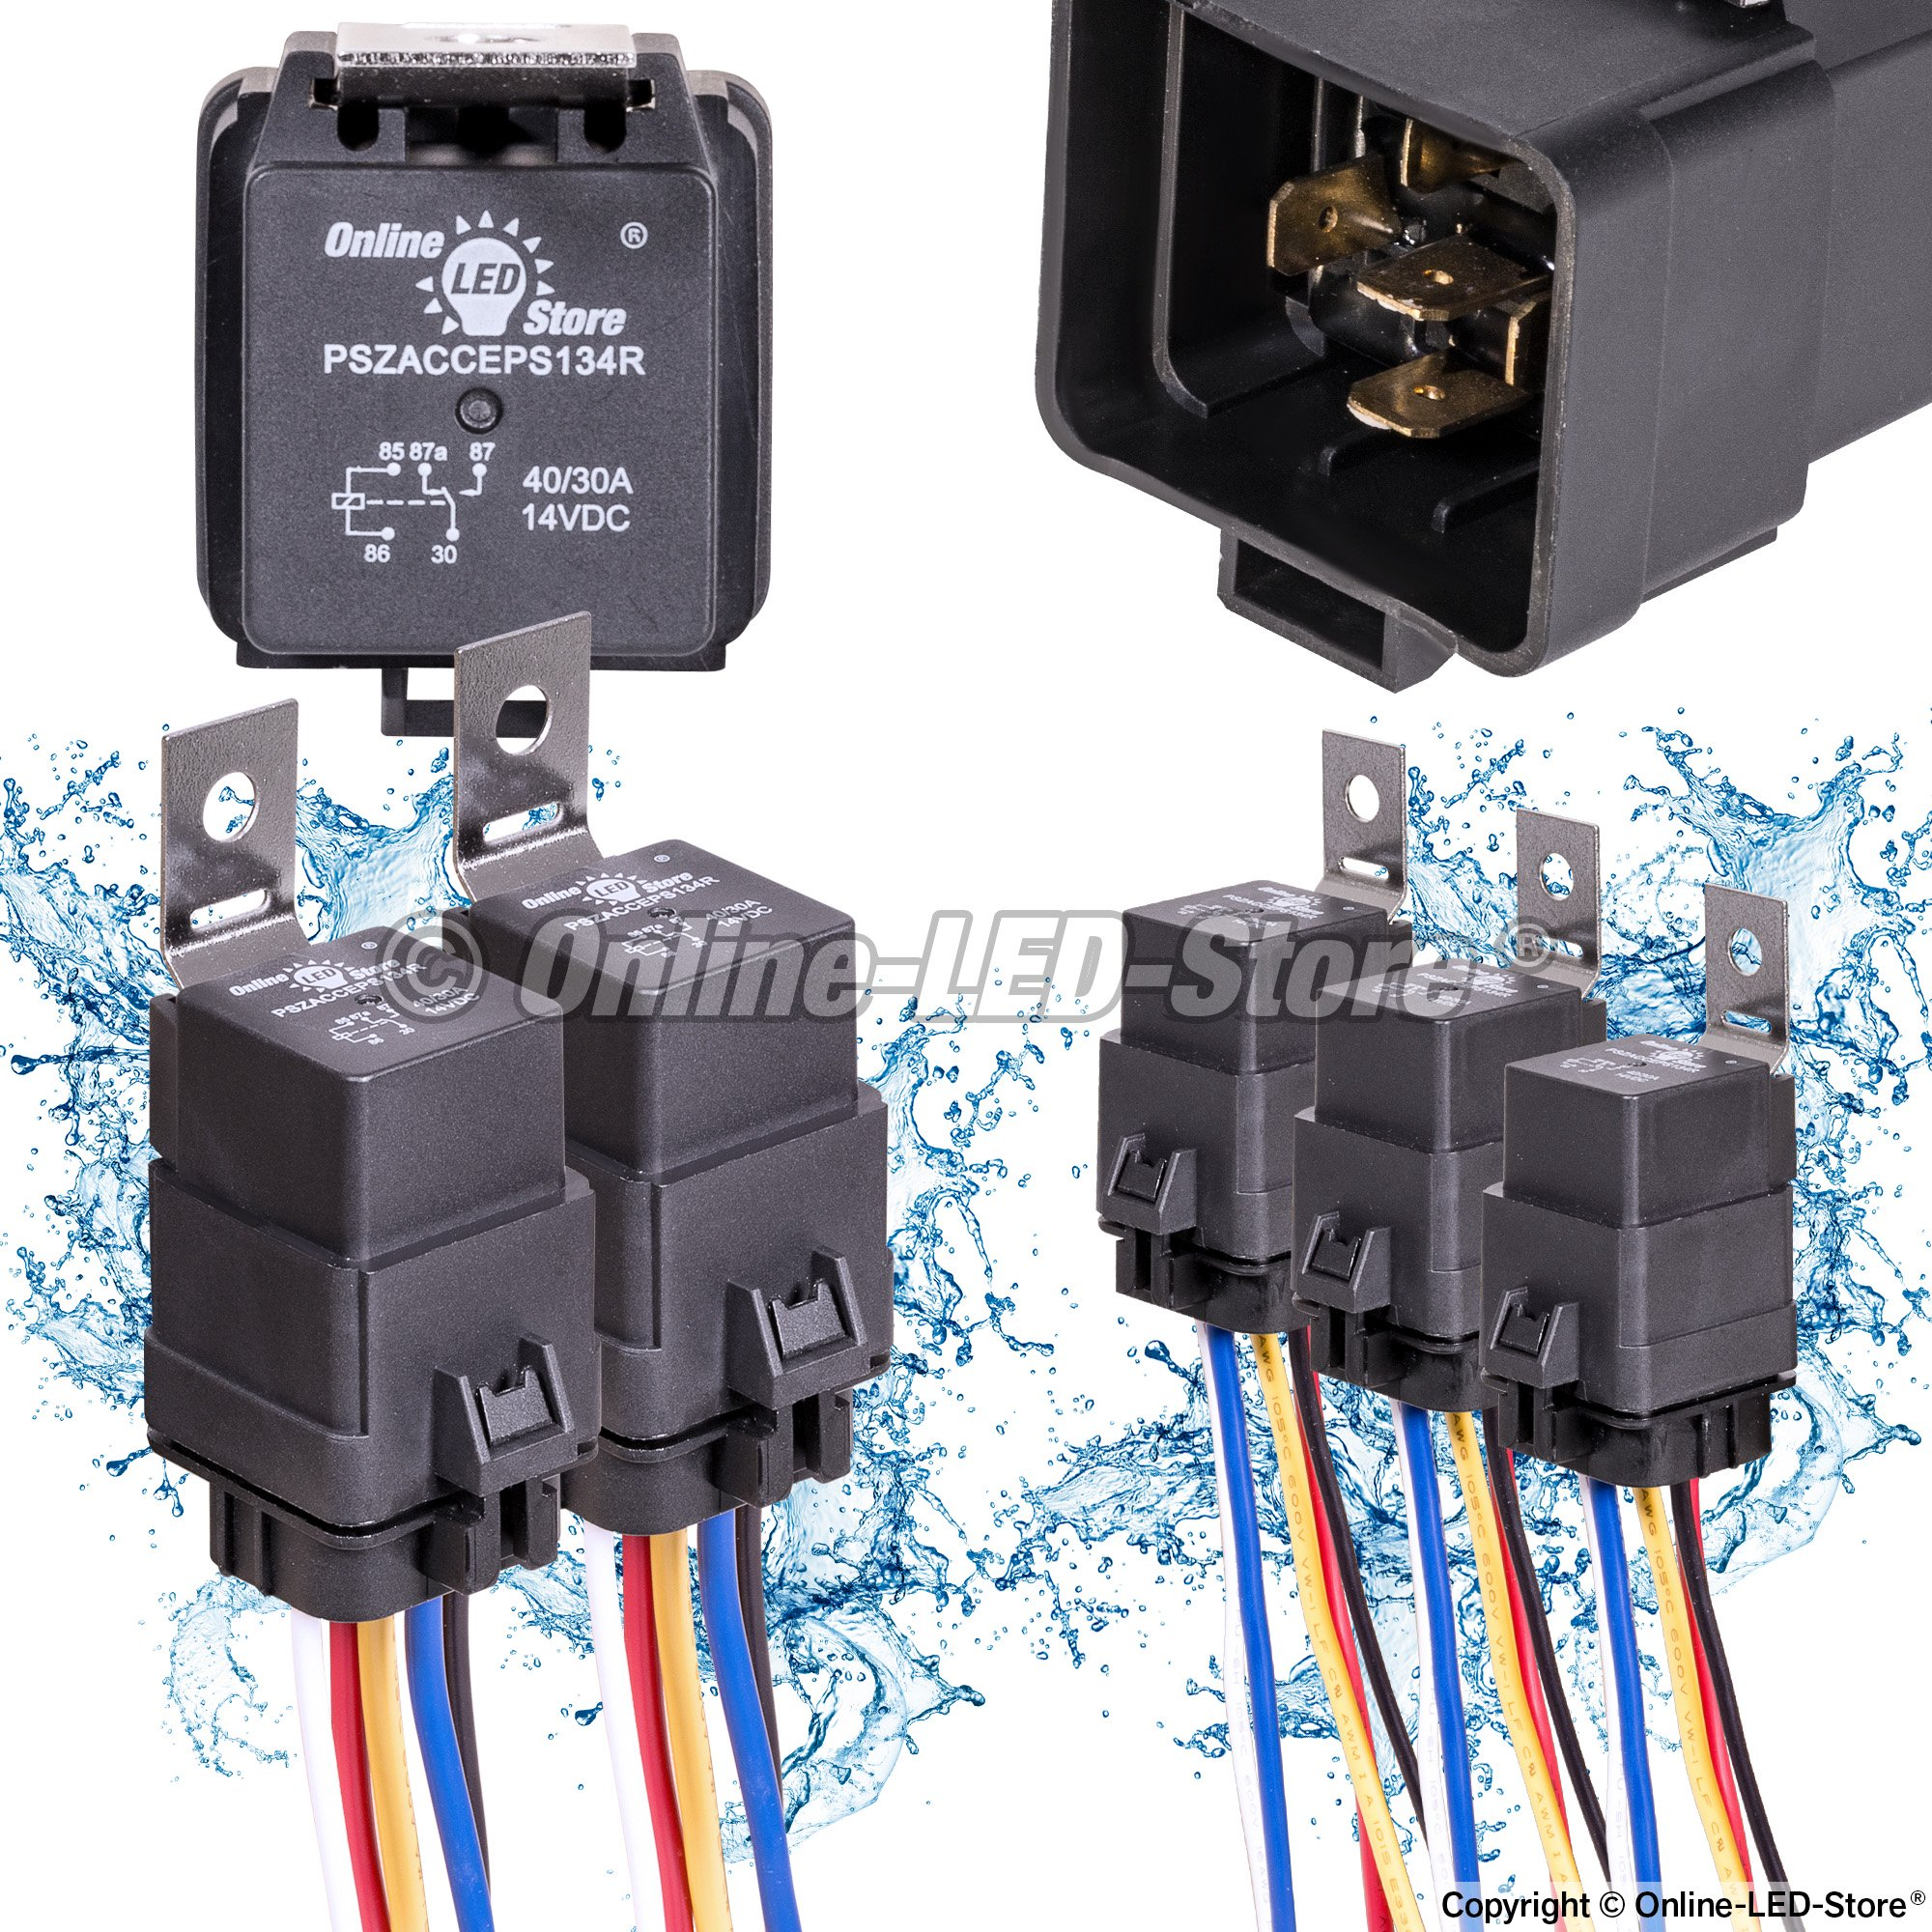 ols 12v 40 30 amp 5 pin spdt bosch style waterproof electrical relay harness set pszacceps177r xx. Black Bedroom Furniture Sets. Home Design Ideas